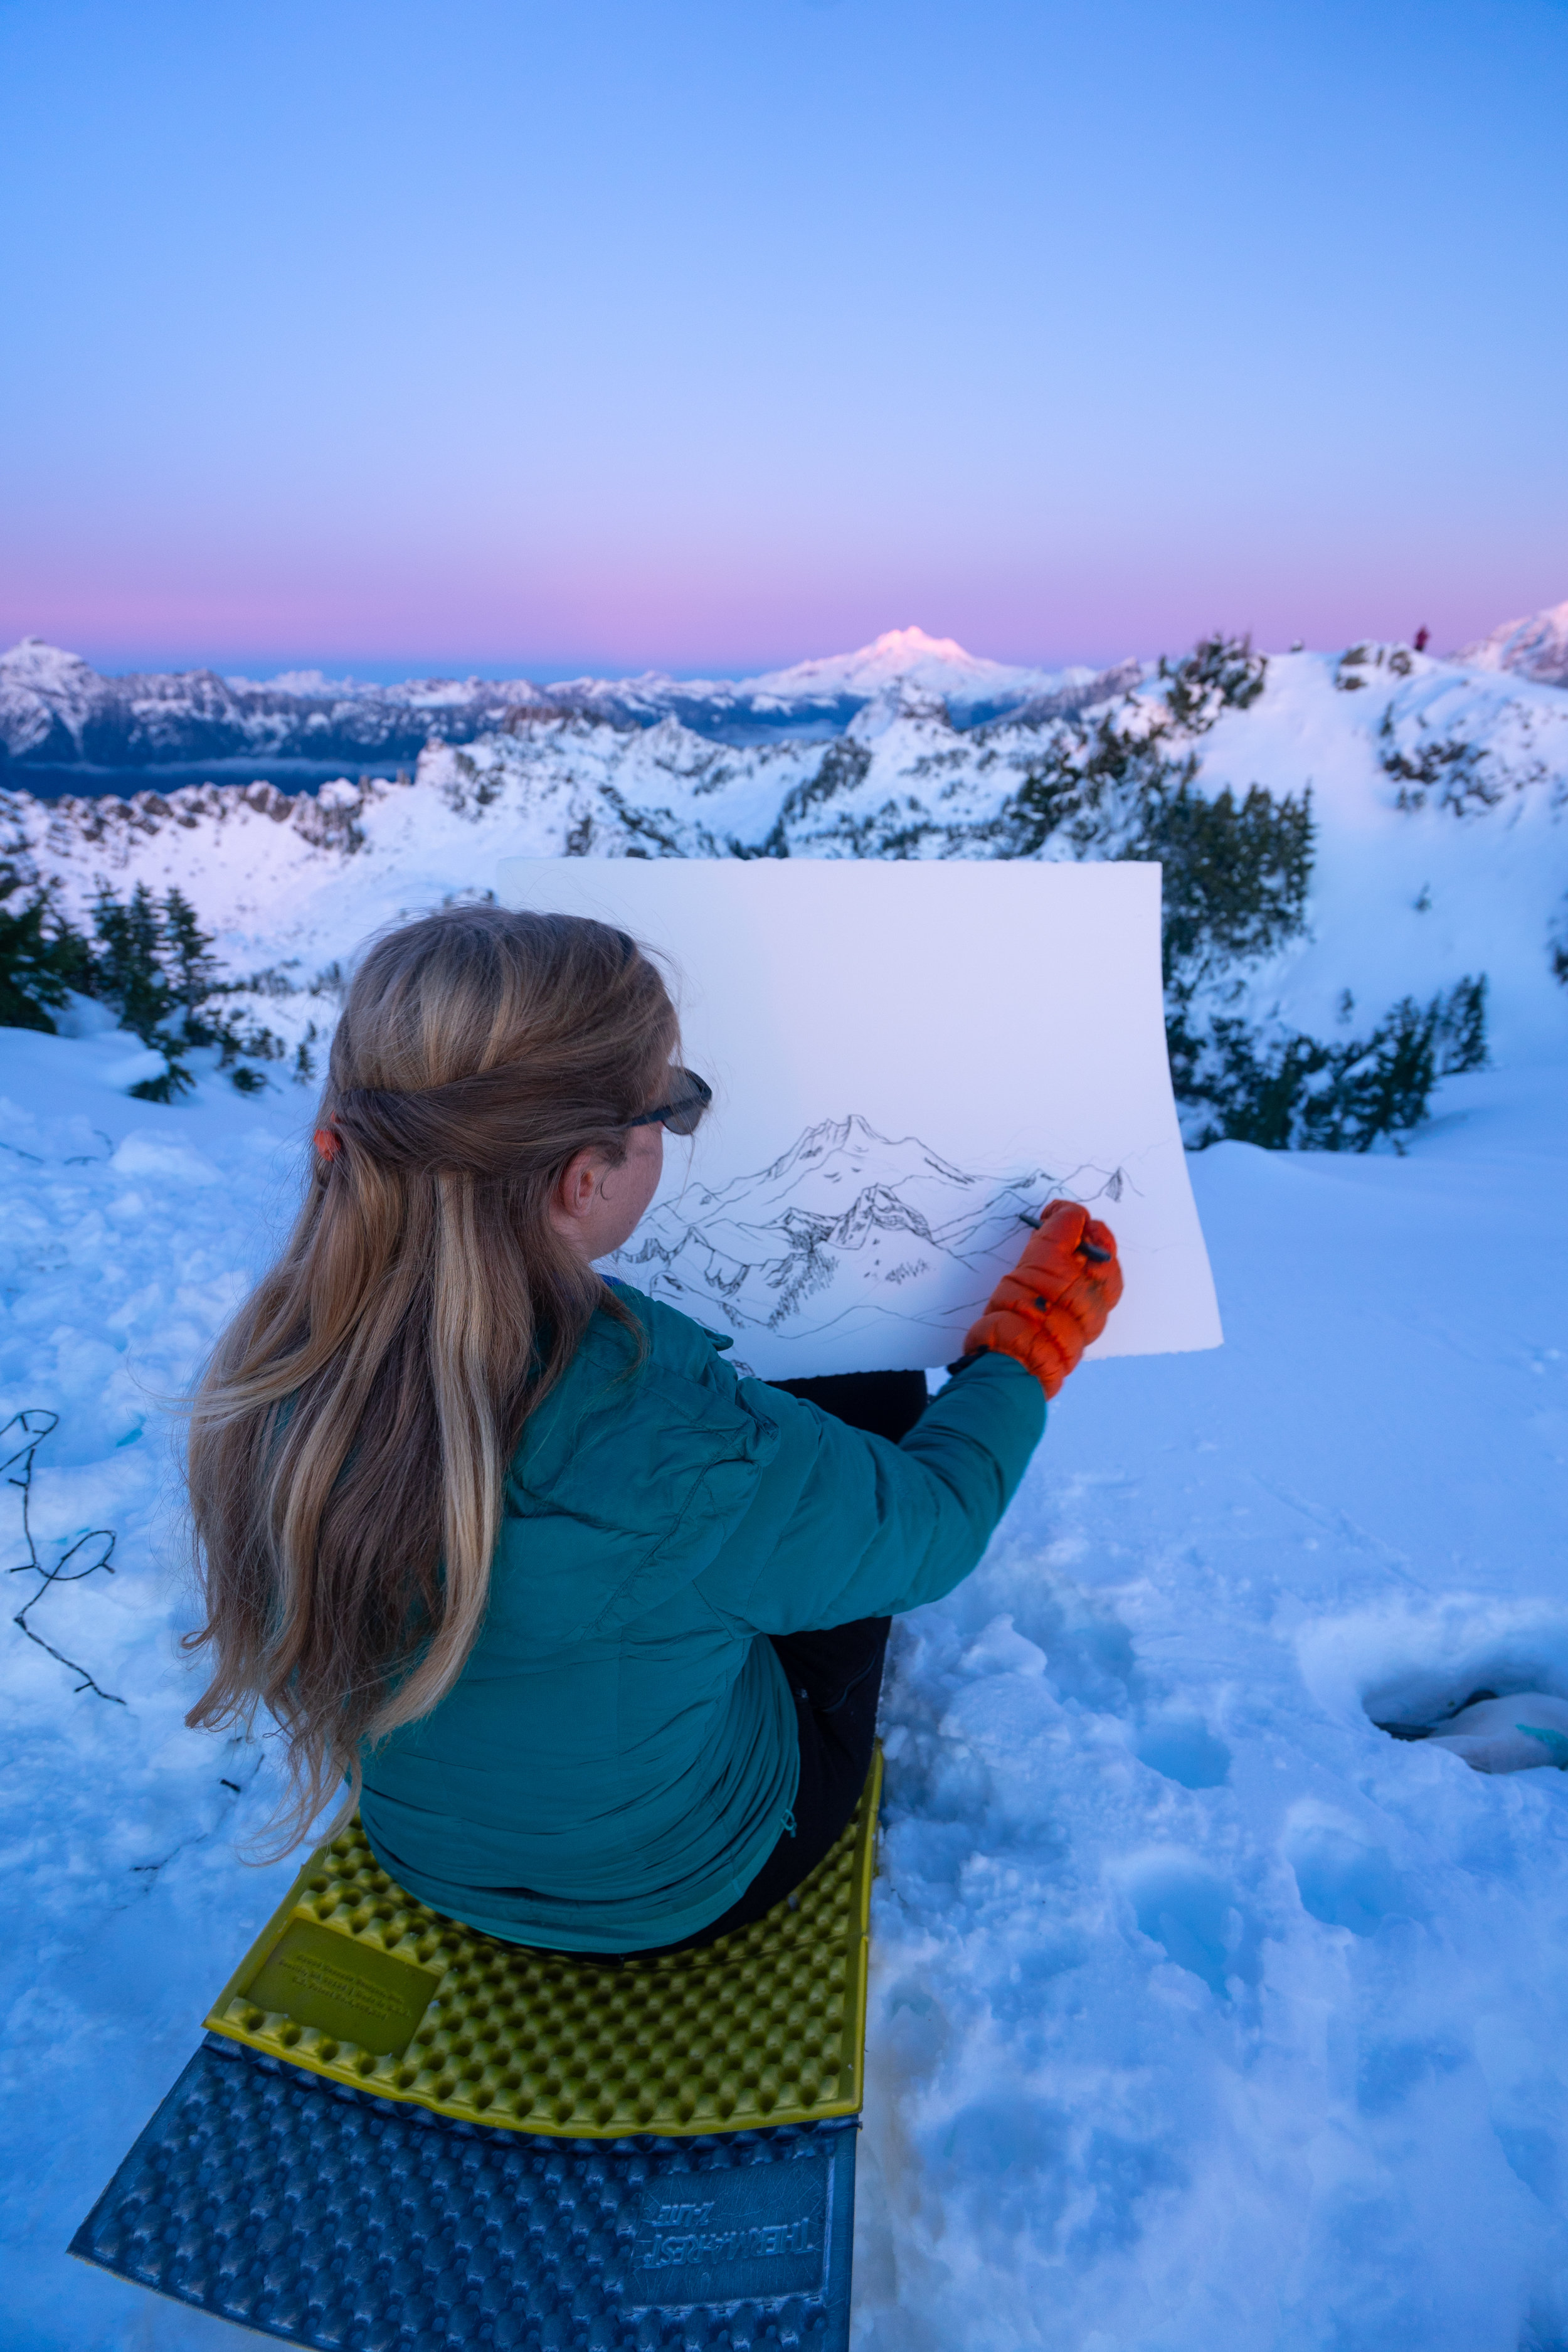 Nikki with the beginning of her painting of Glacier Peak during the sunset!